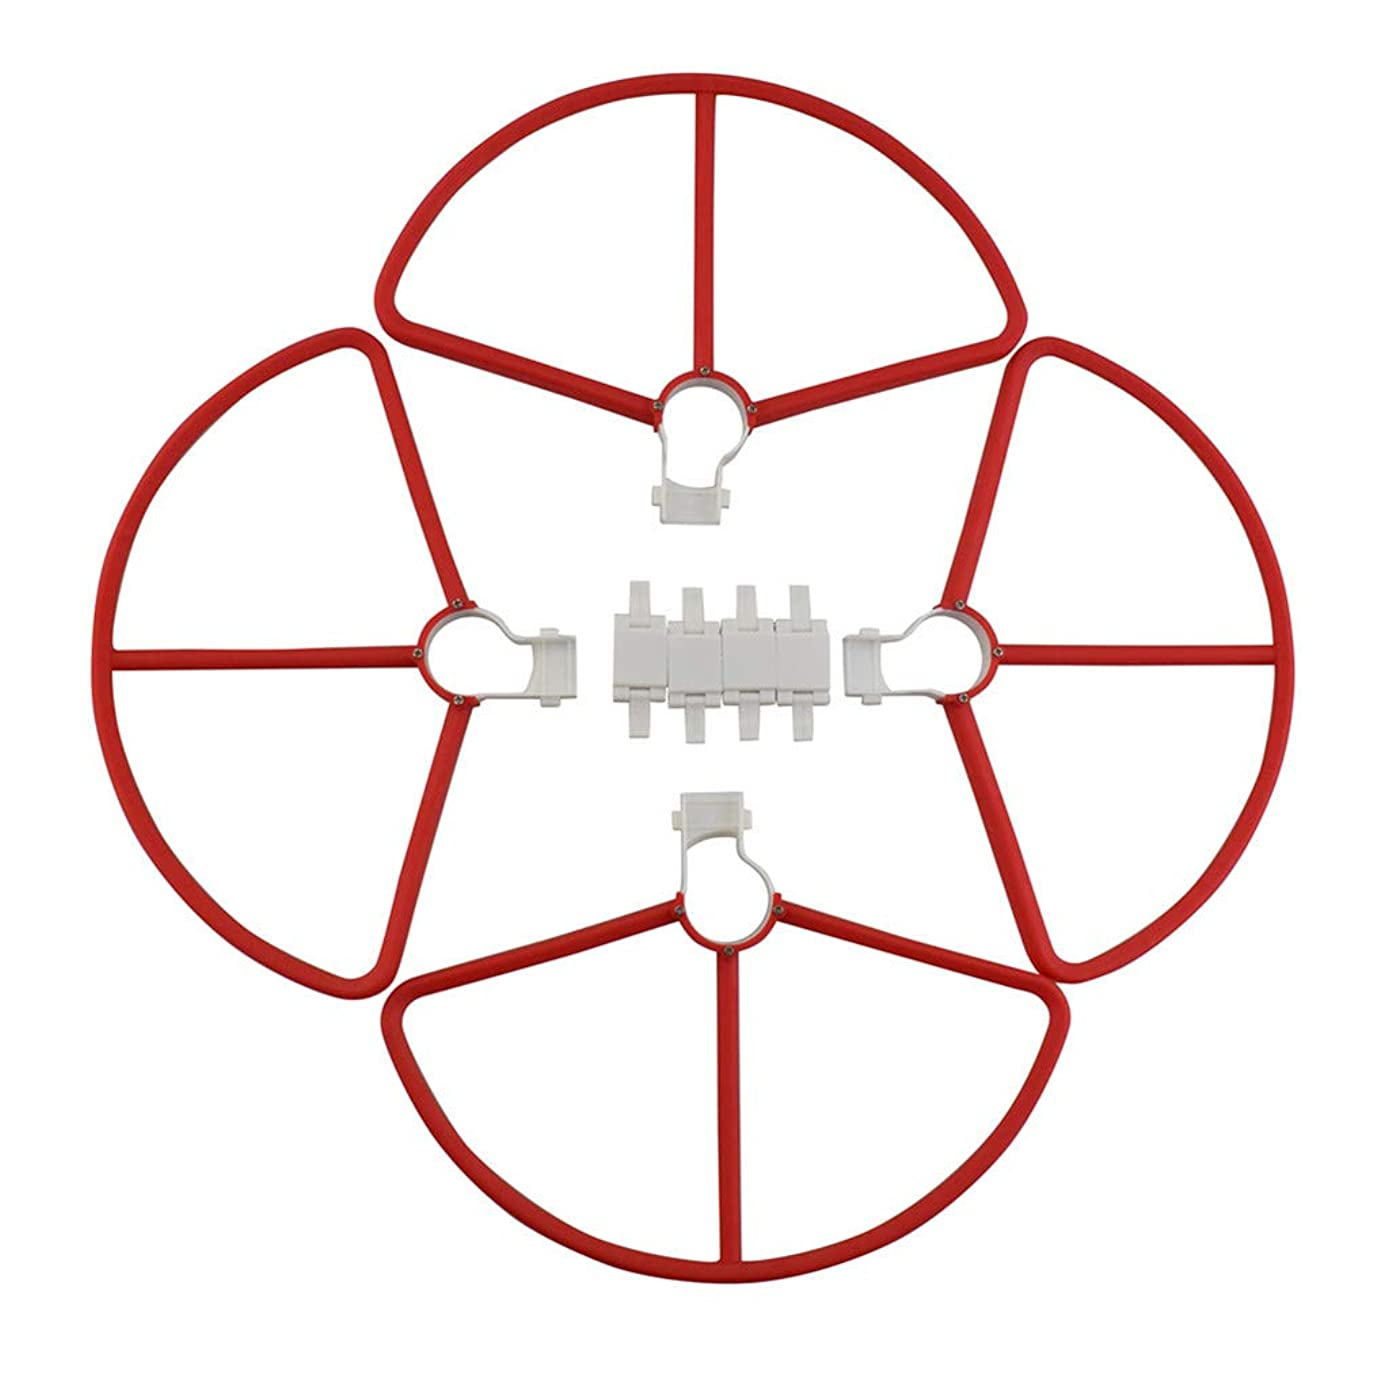 Chercherr Drone Replacement Propeller Set, 4PCS Quick Release Protective Cover+ 4PCS Fasteners for Hubsan Zino H117S Drone Accessories (Red)